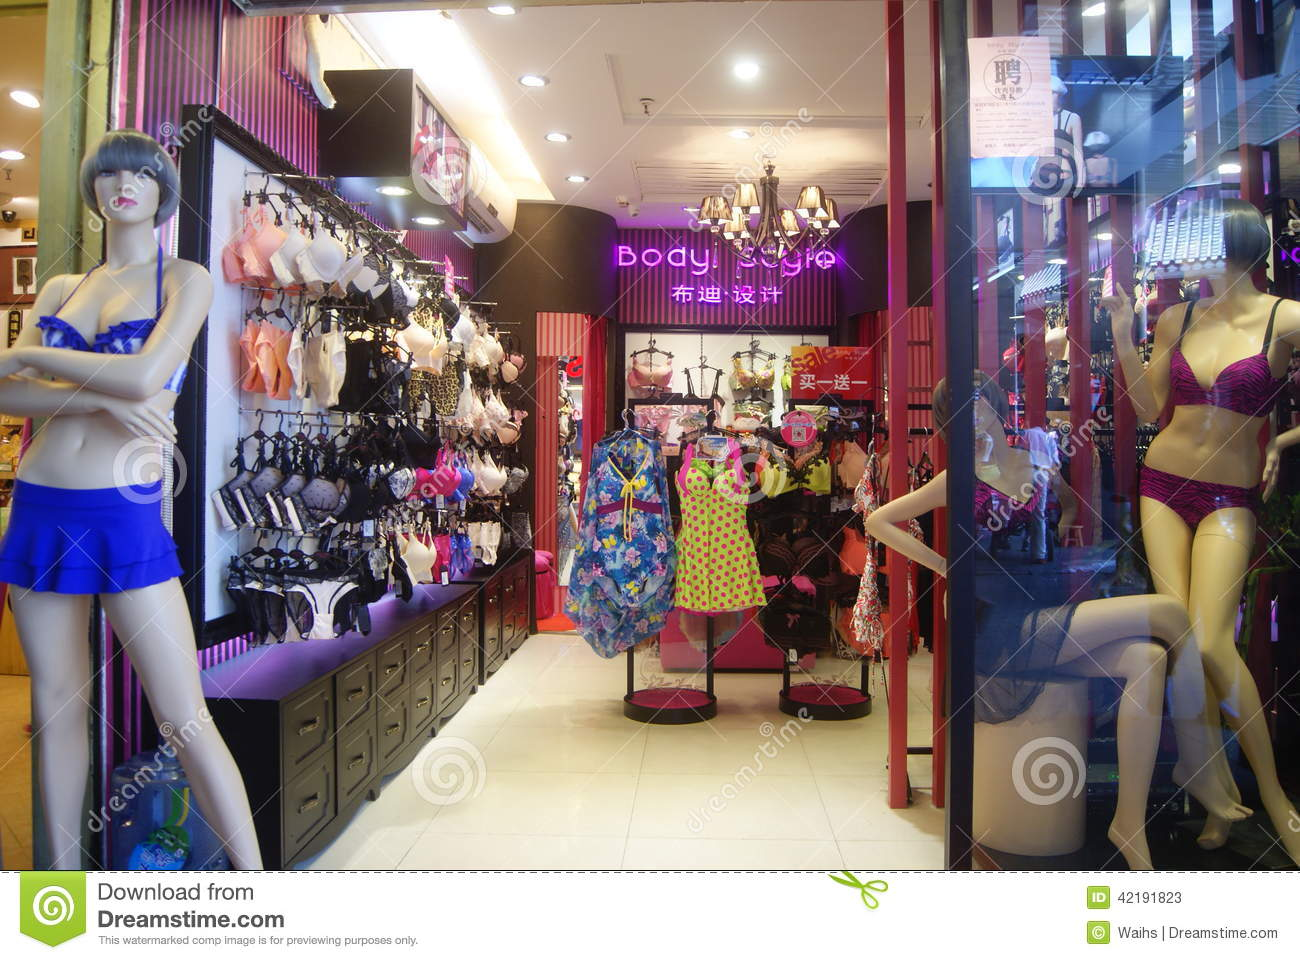 e66d90eb616 Welcome to The Lingerie Shoppe For 71 years, The Lingerie Shoppe has  provided its customers